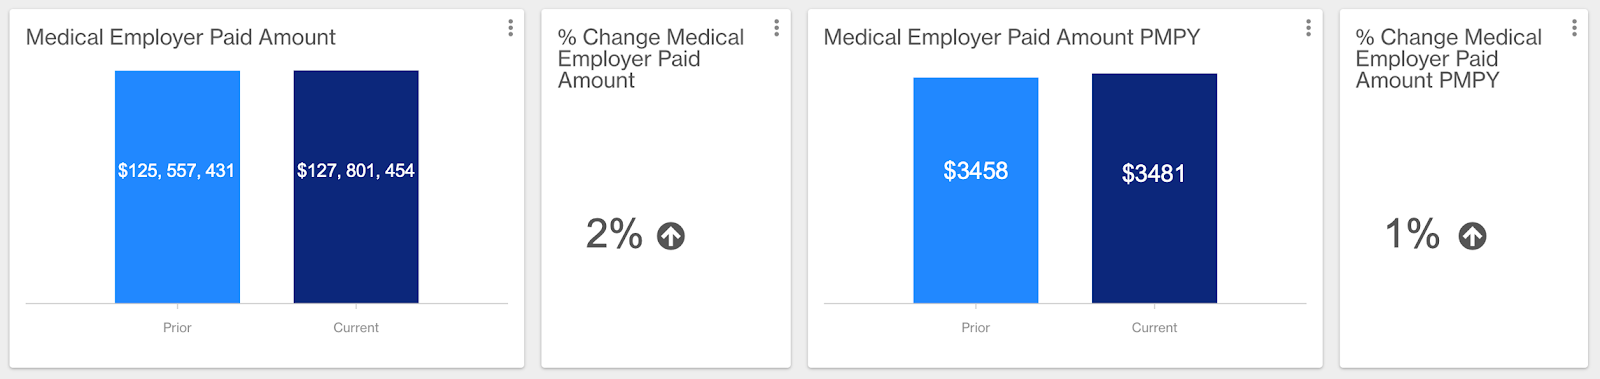 Charts showing employer paid and employee paid amount year over year